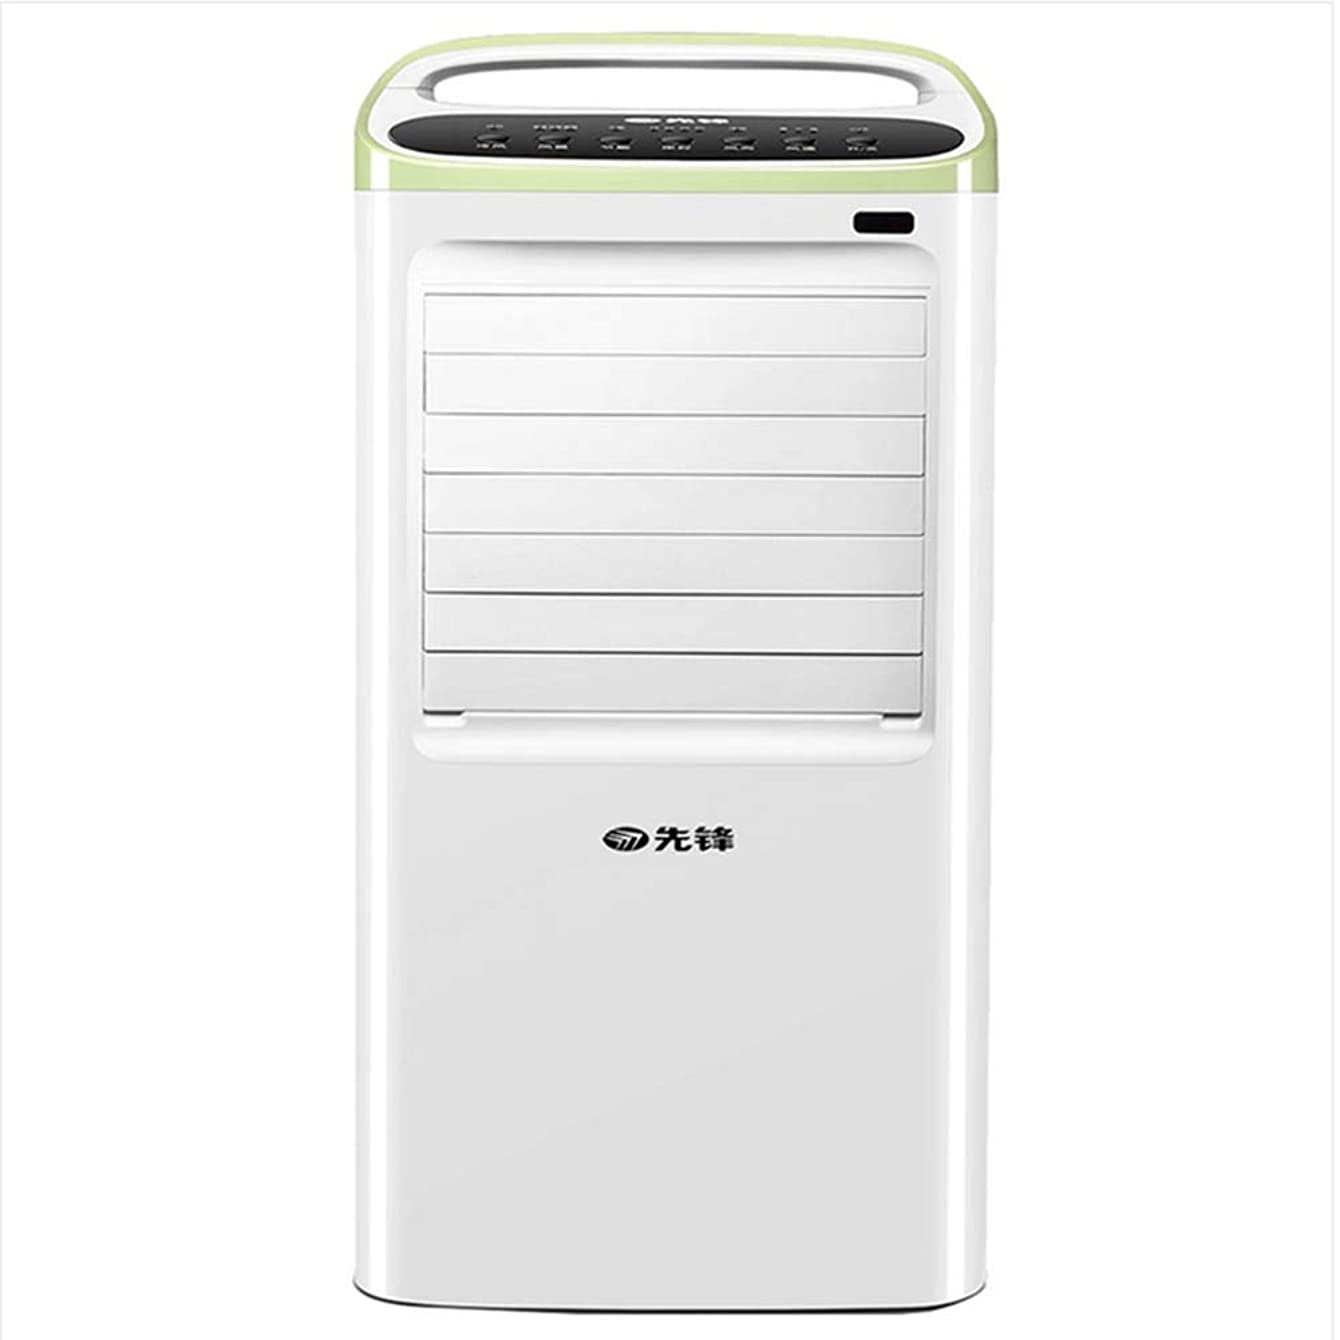 Indoor Portable Evaporative Cooler, Remote Control, Timing, Adjustable Wind Speed, Humidification Purifier and Fan, Mobile Air Conditioner